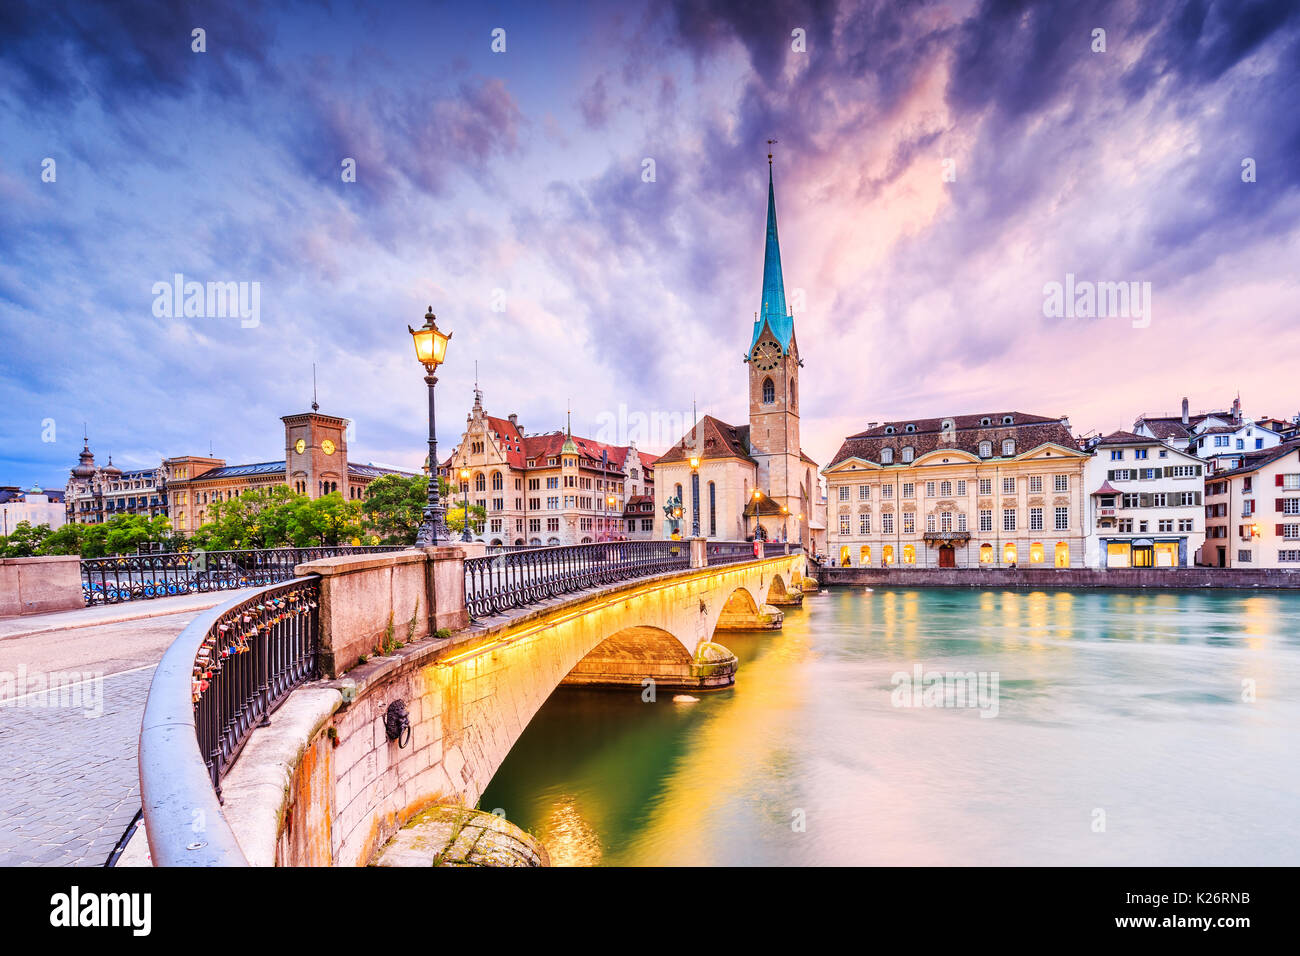 Zurich, Switzerland. View of the historic city center with famous Fraumunster Church, on the Limmat river.Stock Photo